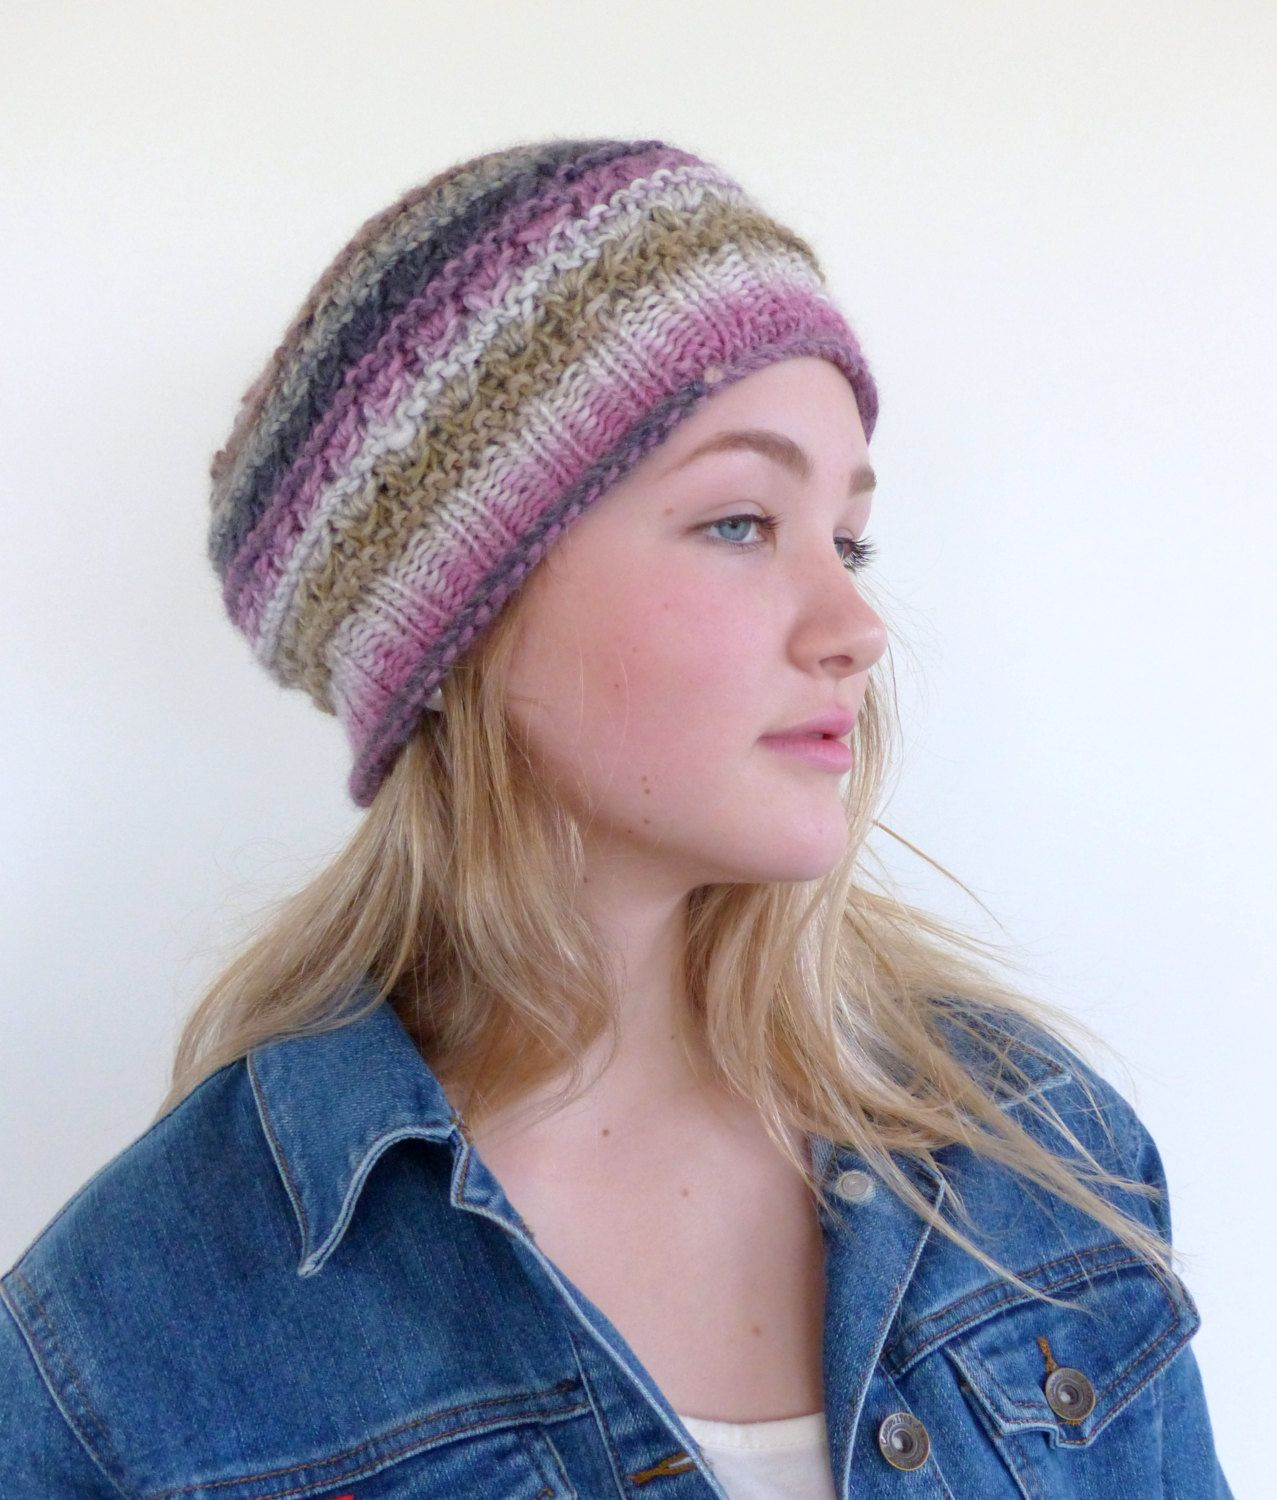 450271add3f Pink and black Hand Knit Hat pink Beanie Womens winter hat ...